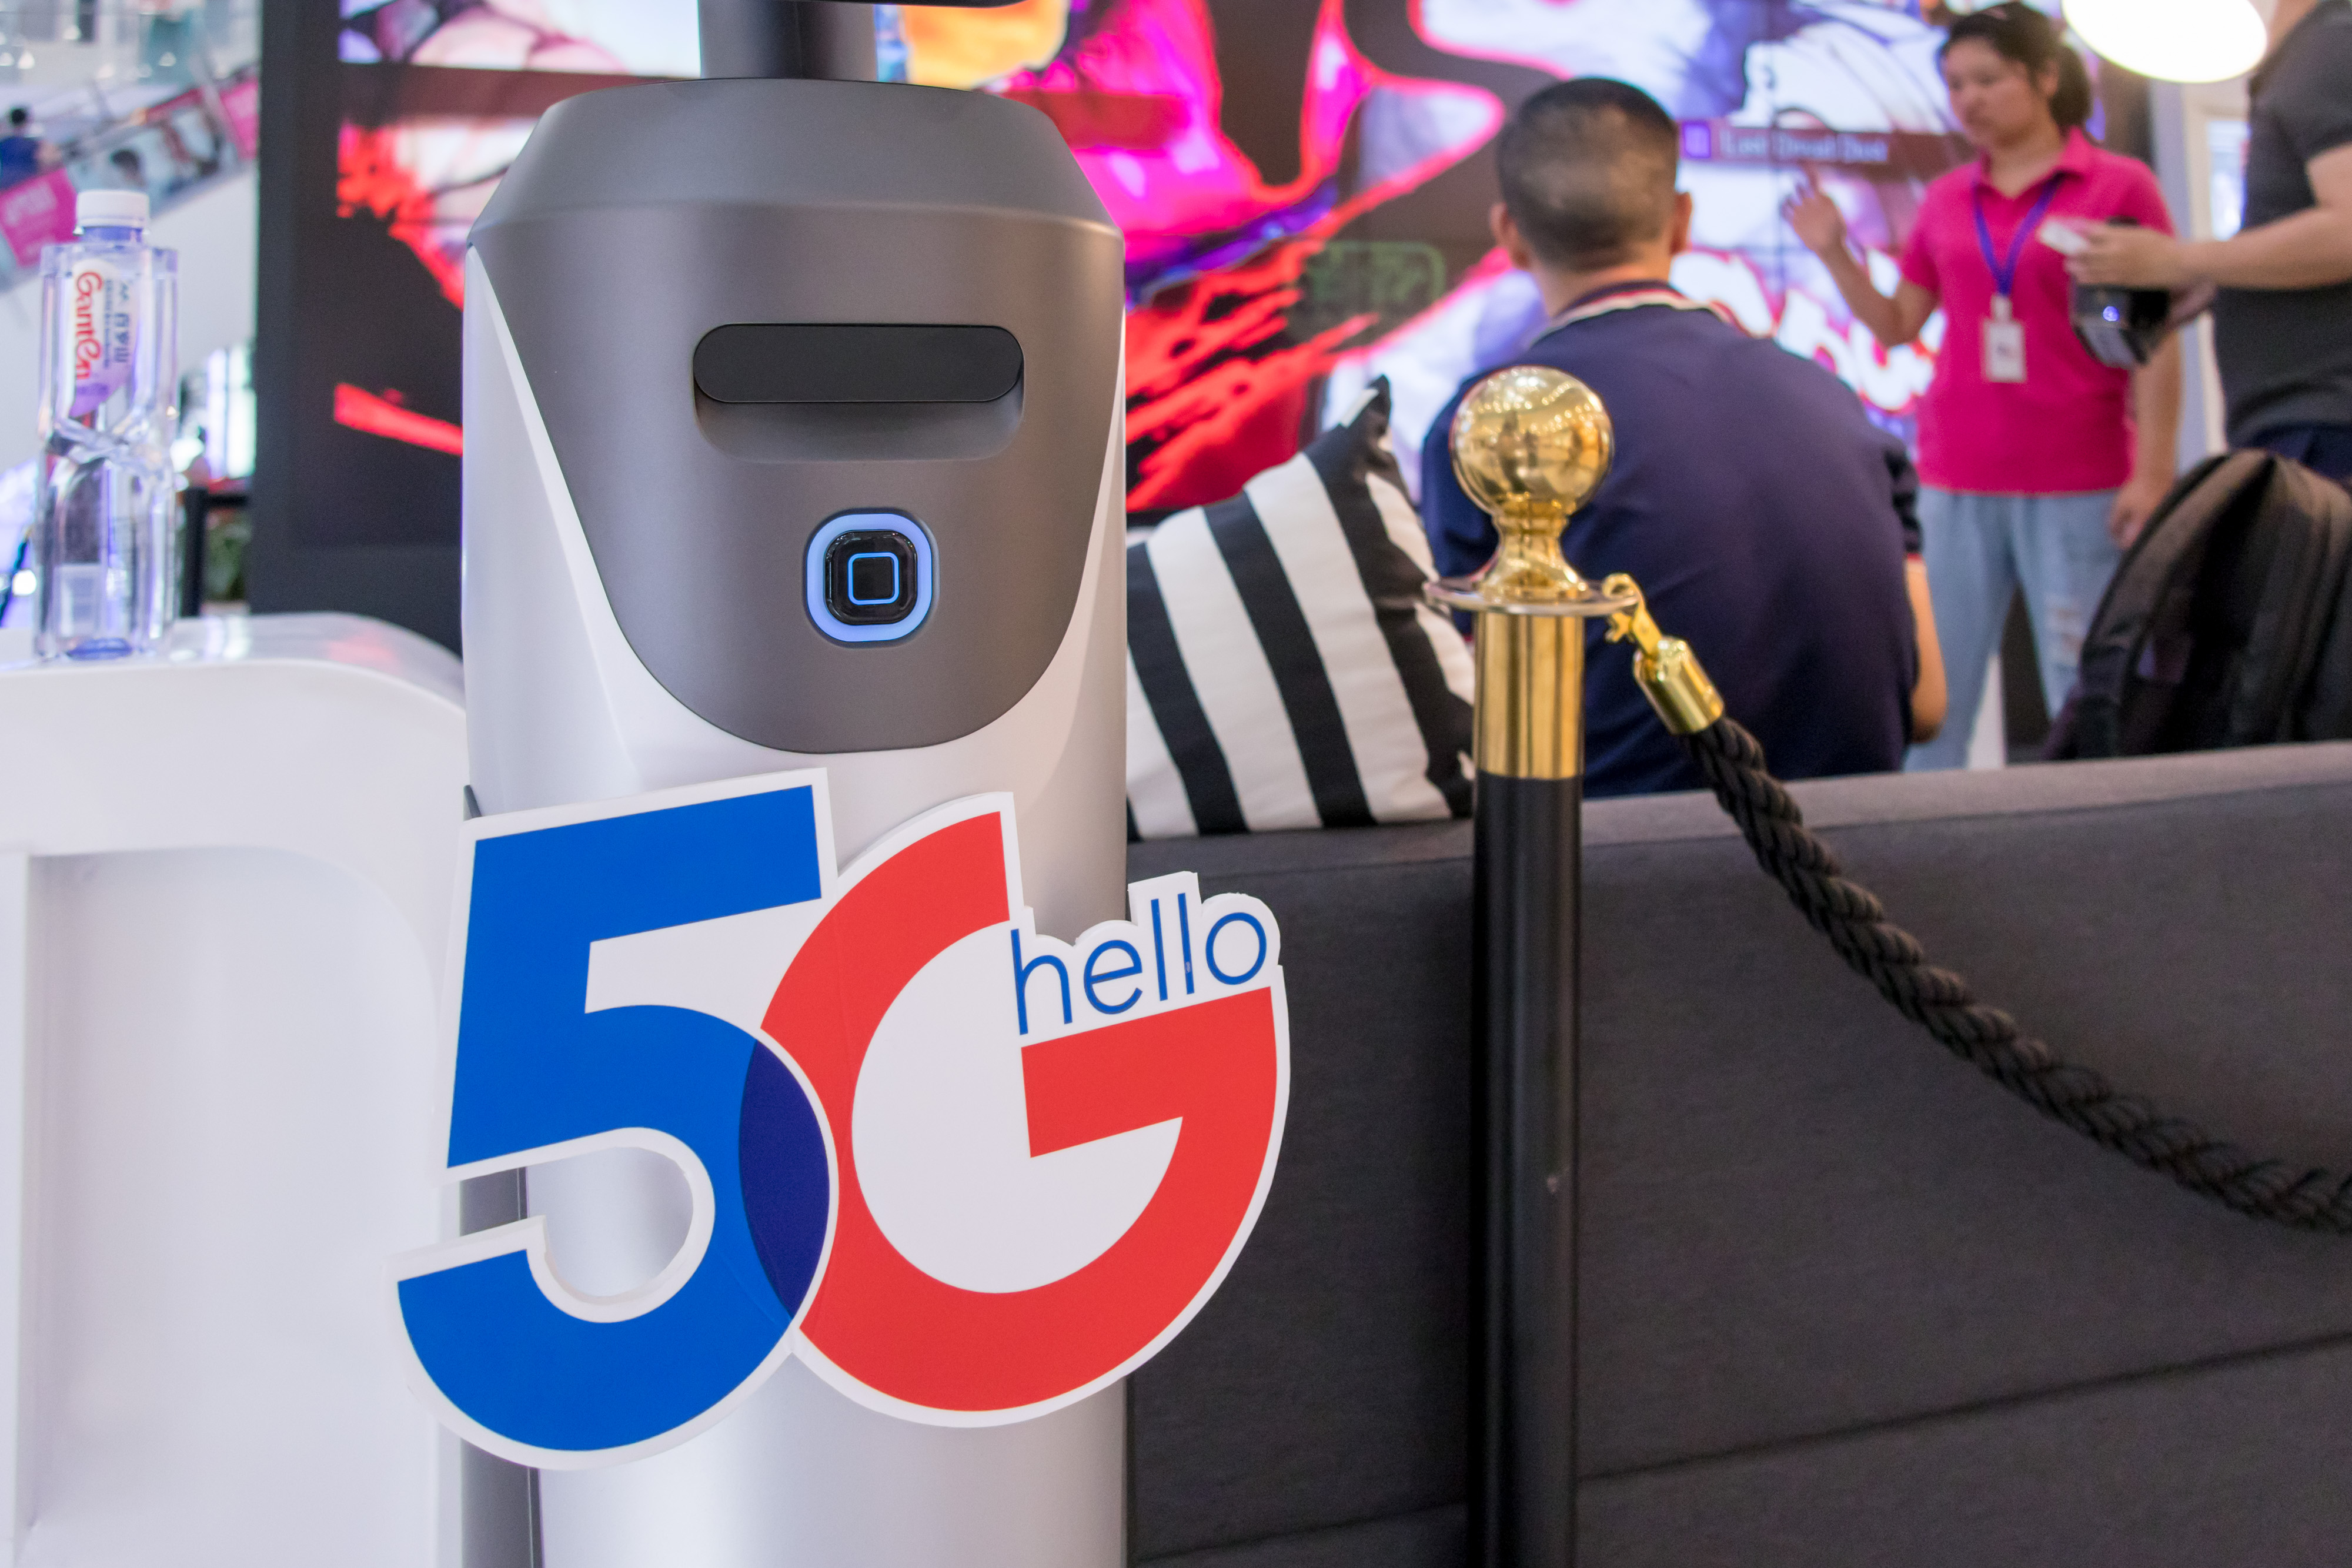 Citizens Experience 5G Network At A Mall In Shanghai